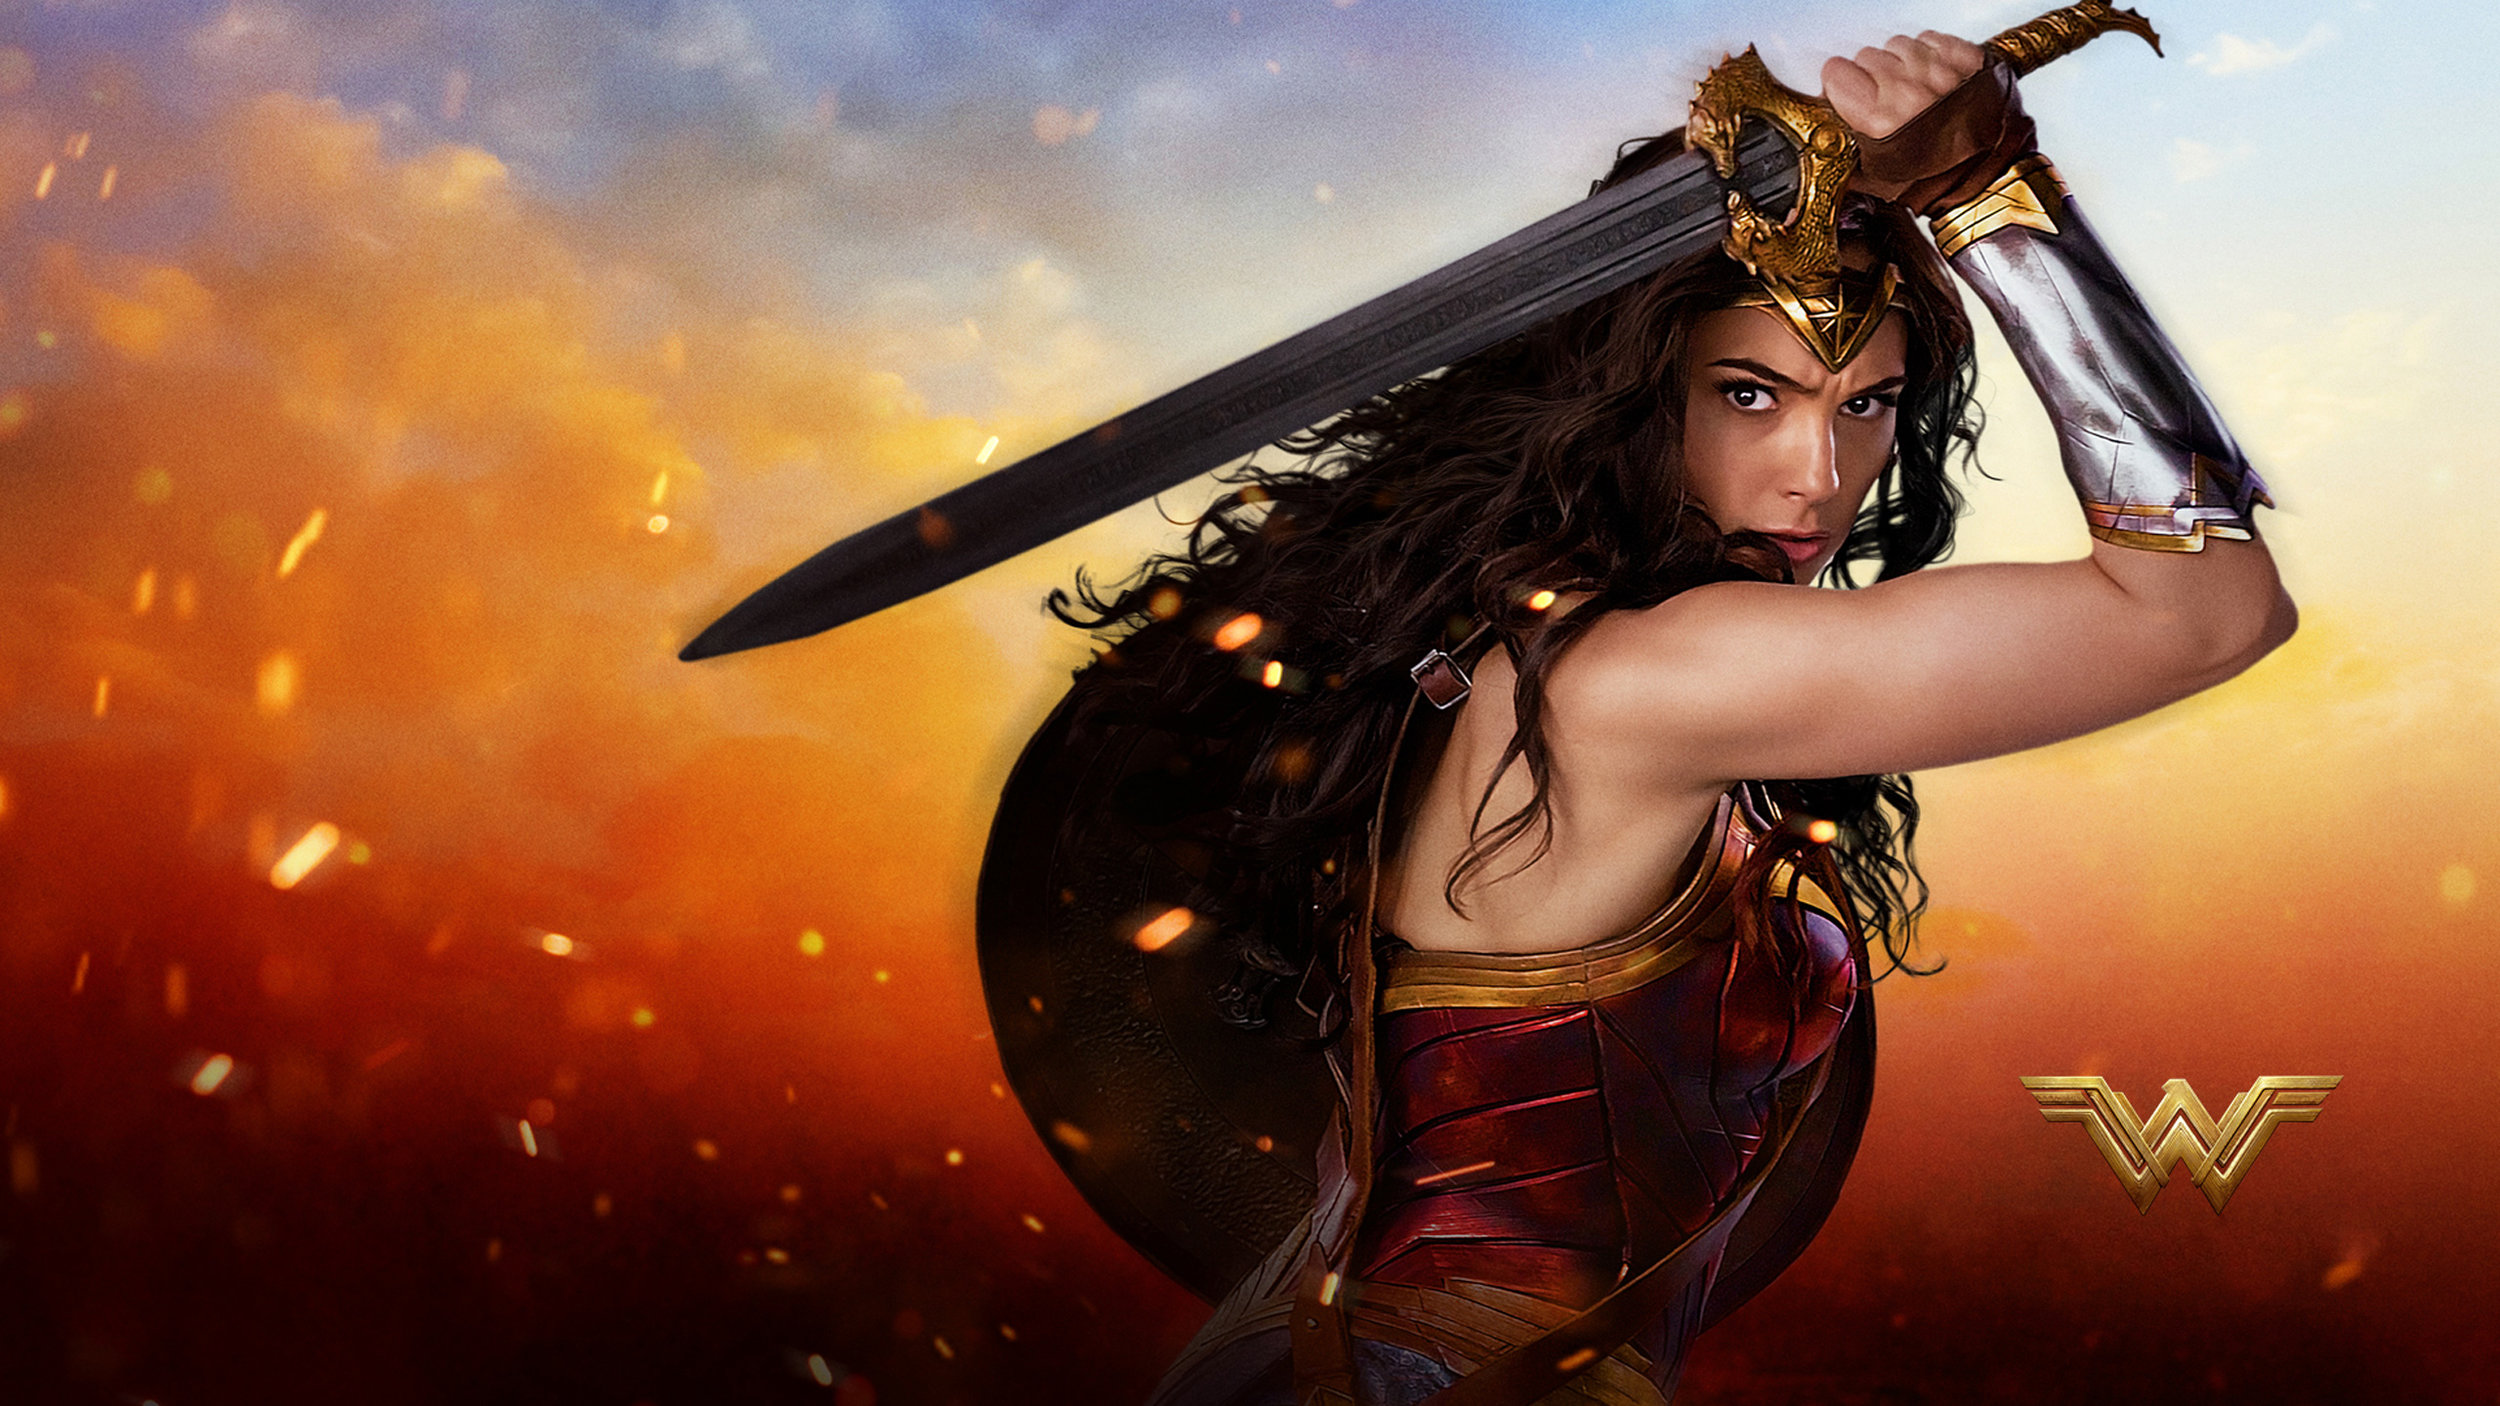 2017-wonder-woman-hd-to.jpg